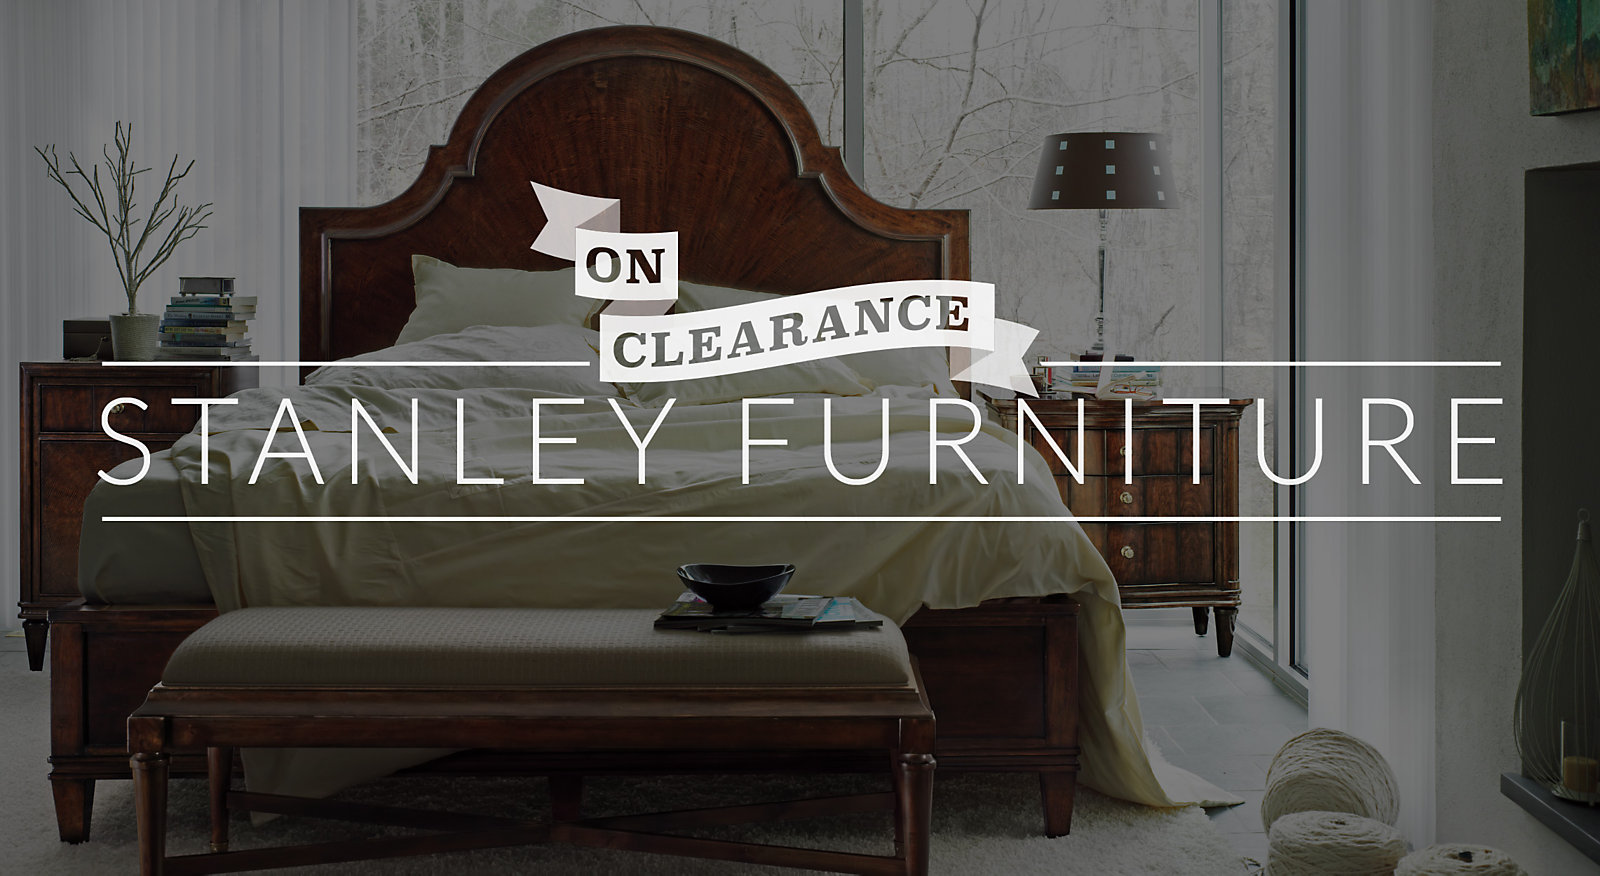 Stanley Furniture sales continue to slide with troubled Vietnam     Stanley Furniture sales continue to slide with troubled Vietnam factory